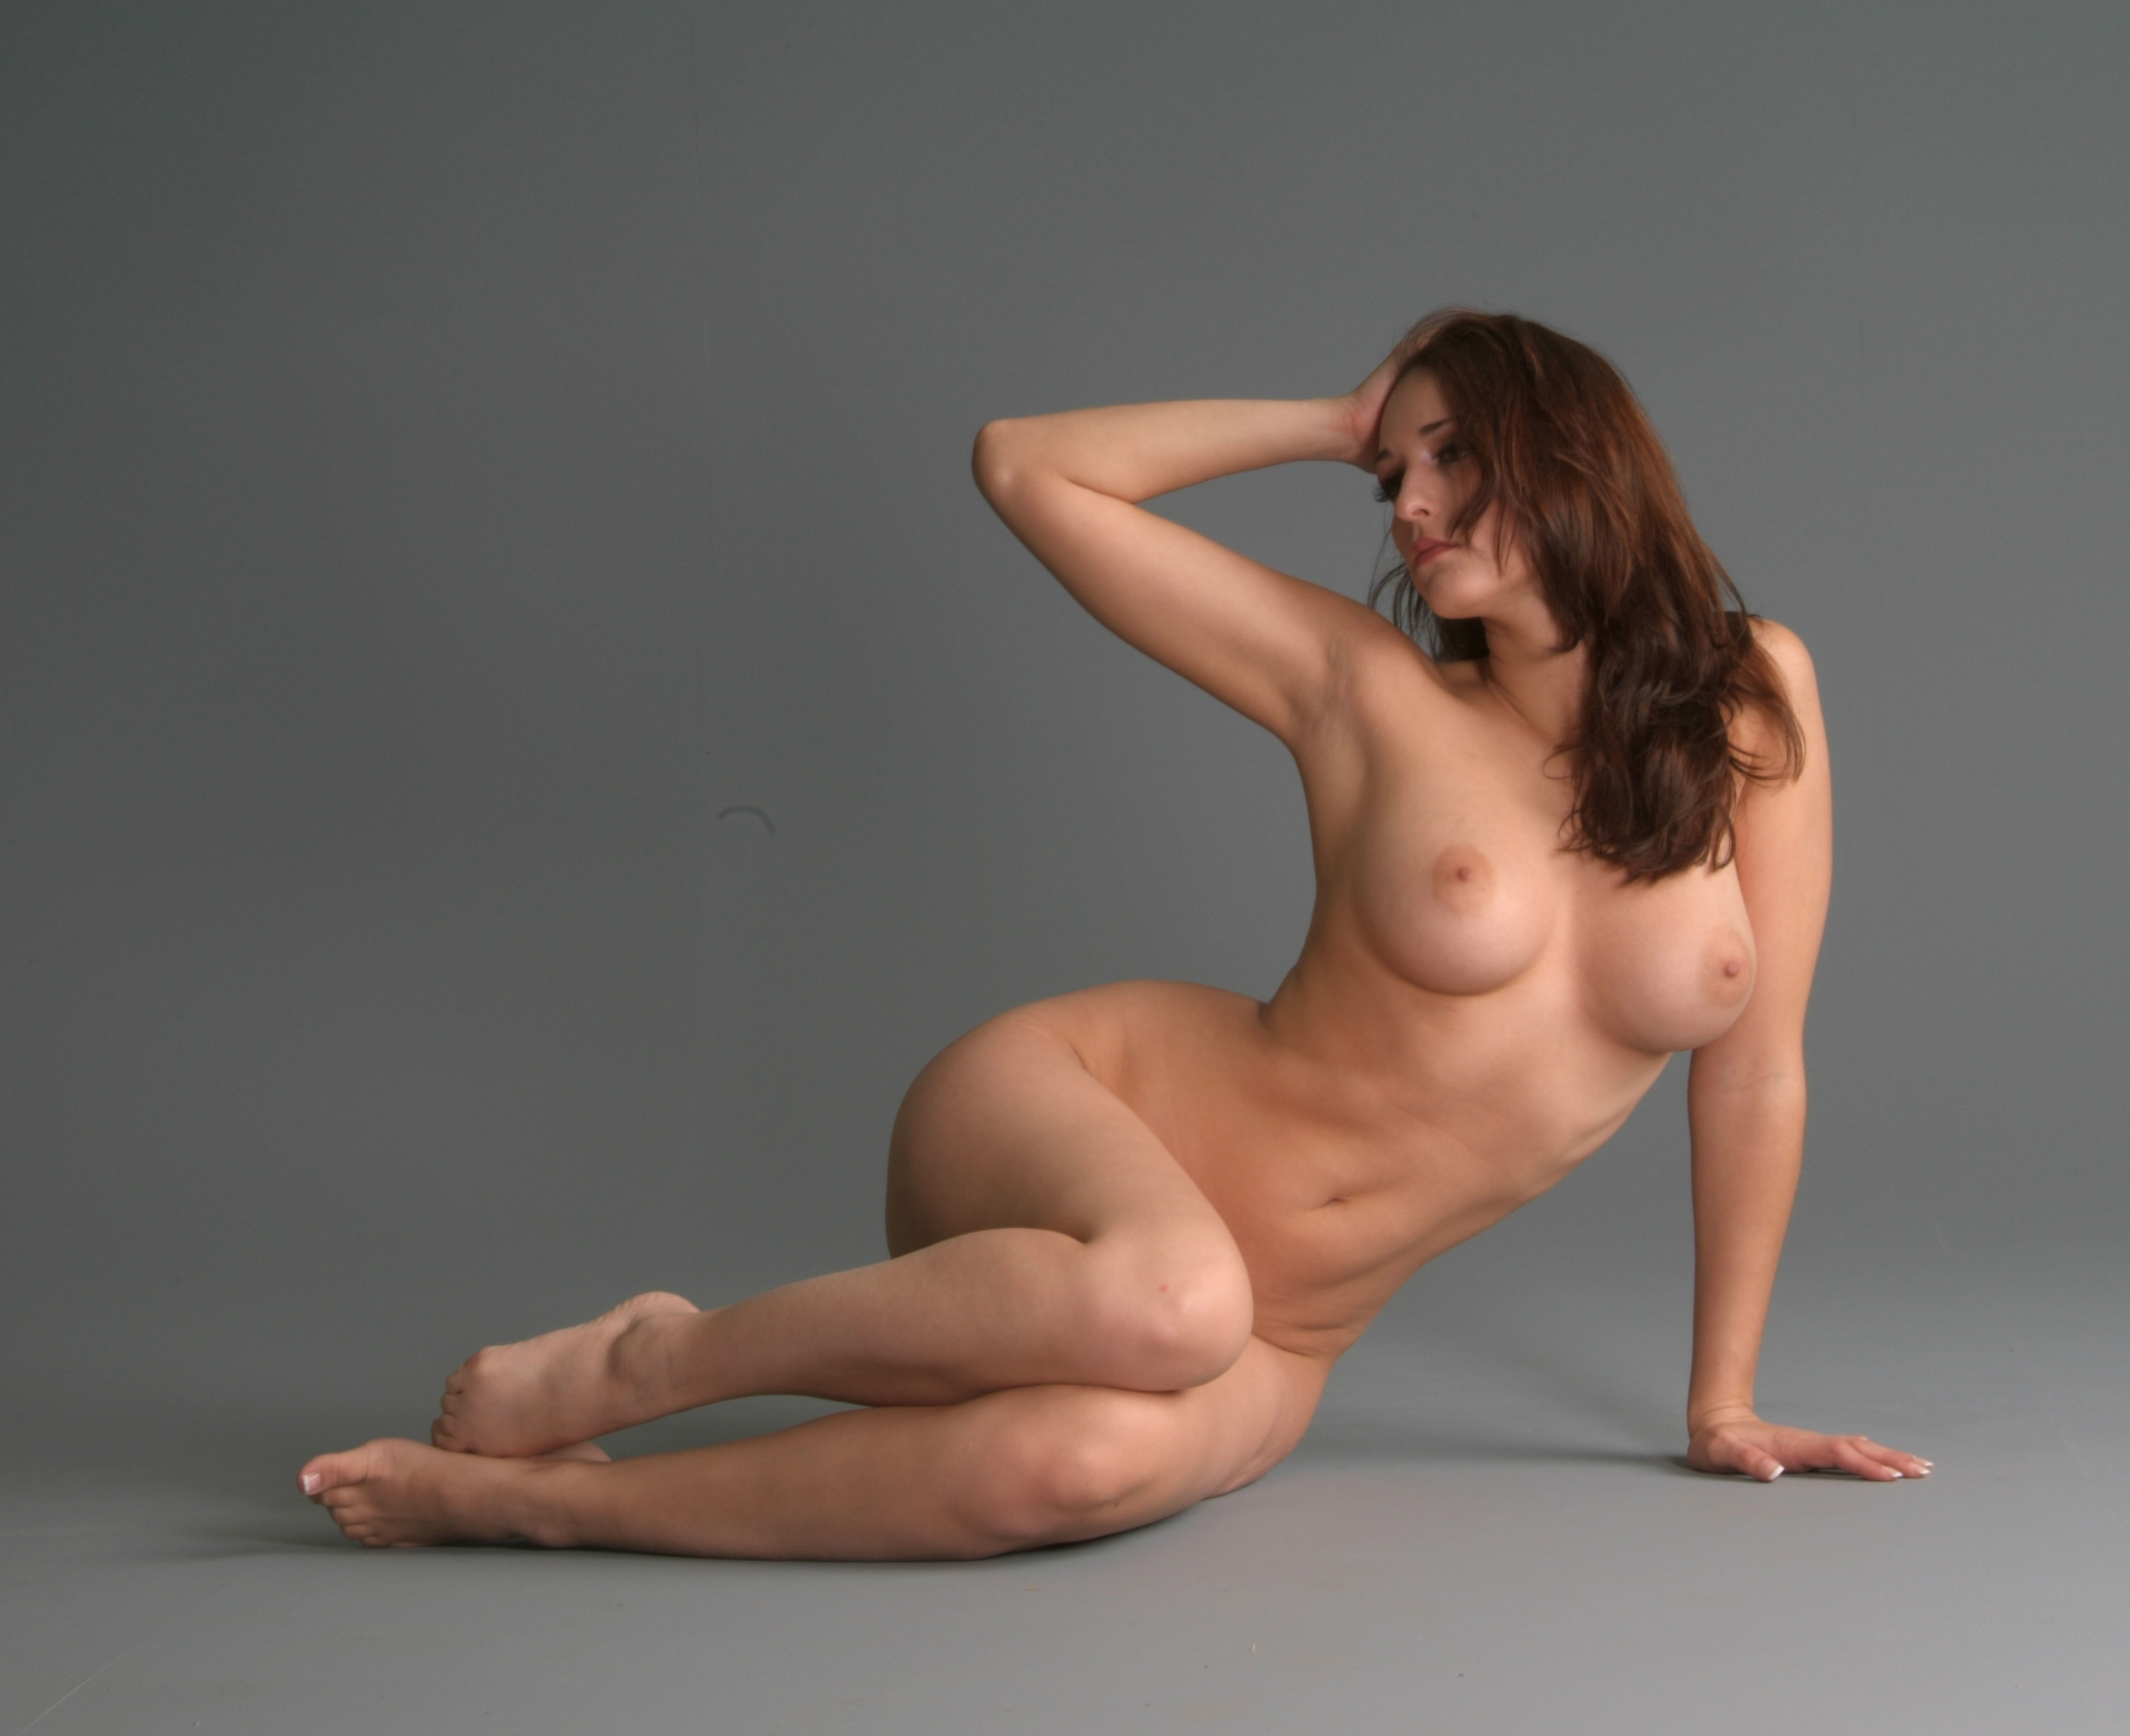 nude reference photo jpg 1200x900